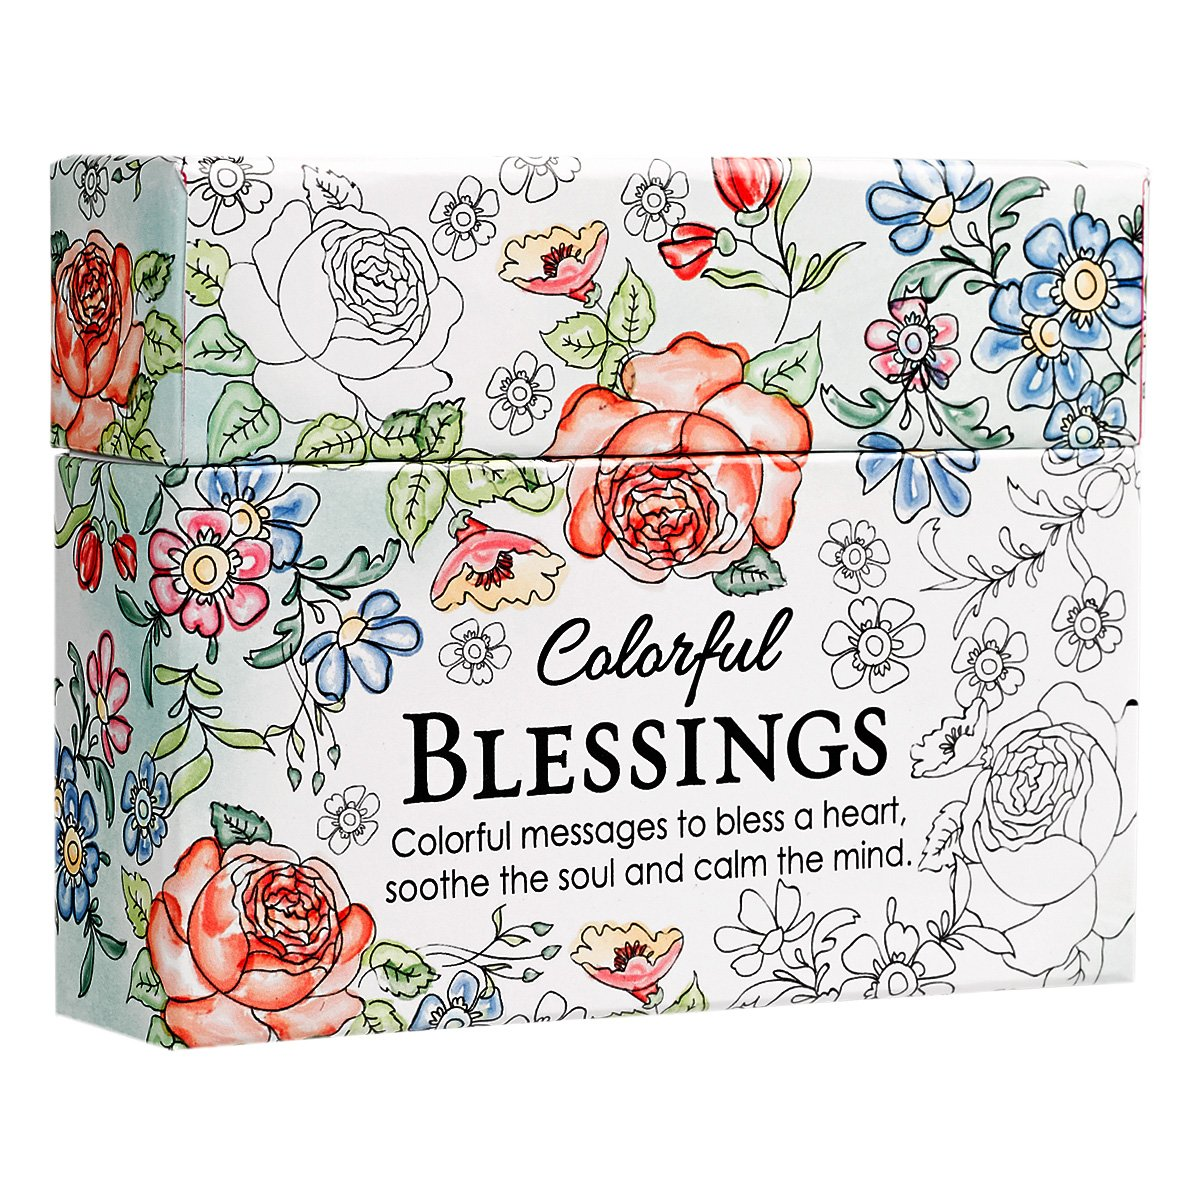 Colorful Blessings Cards Color Share product image